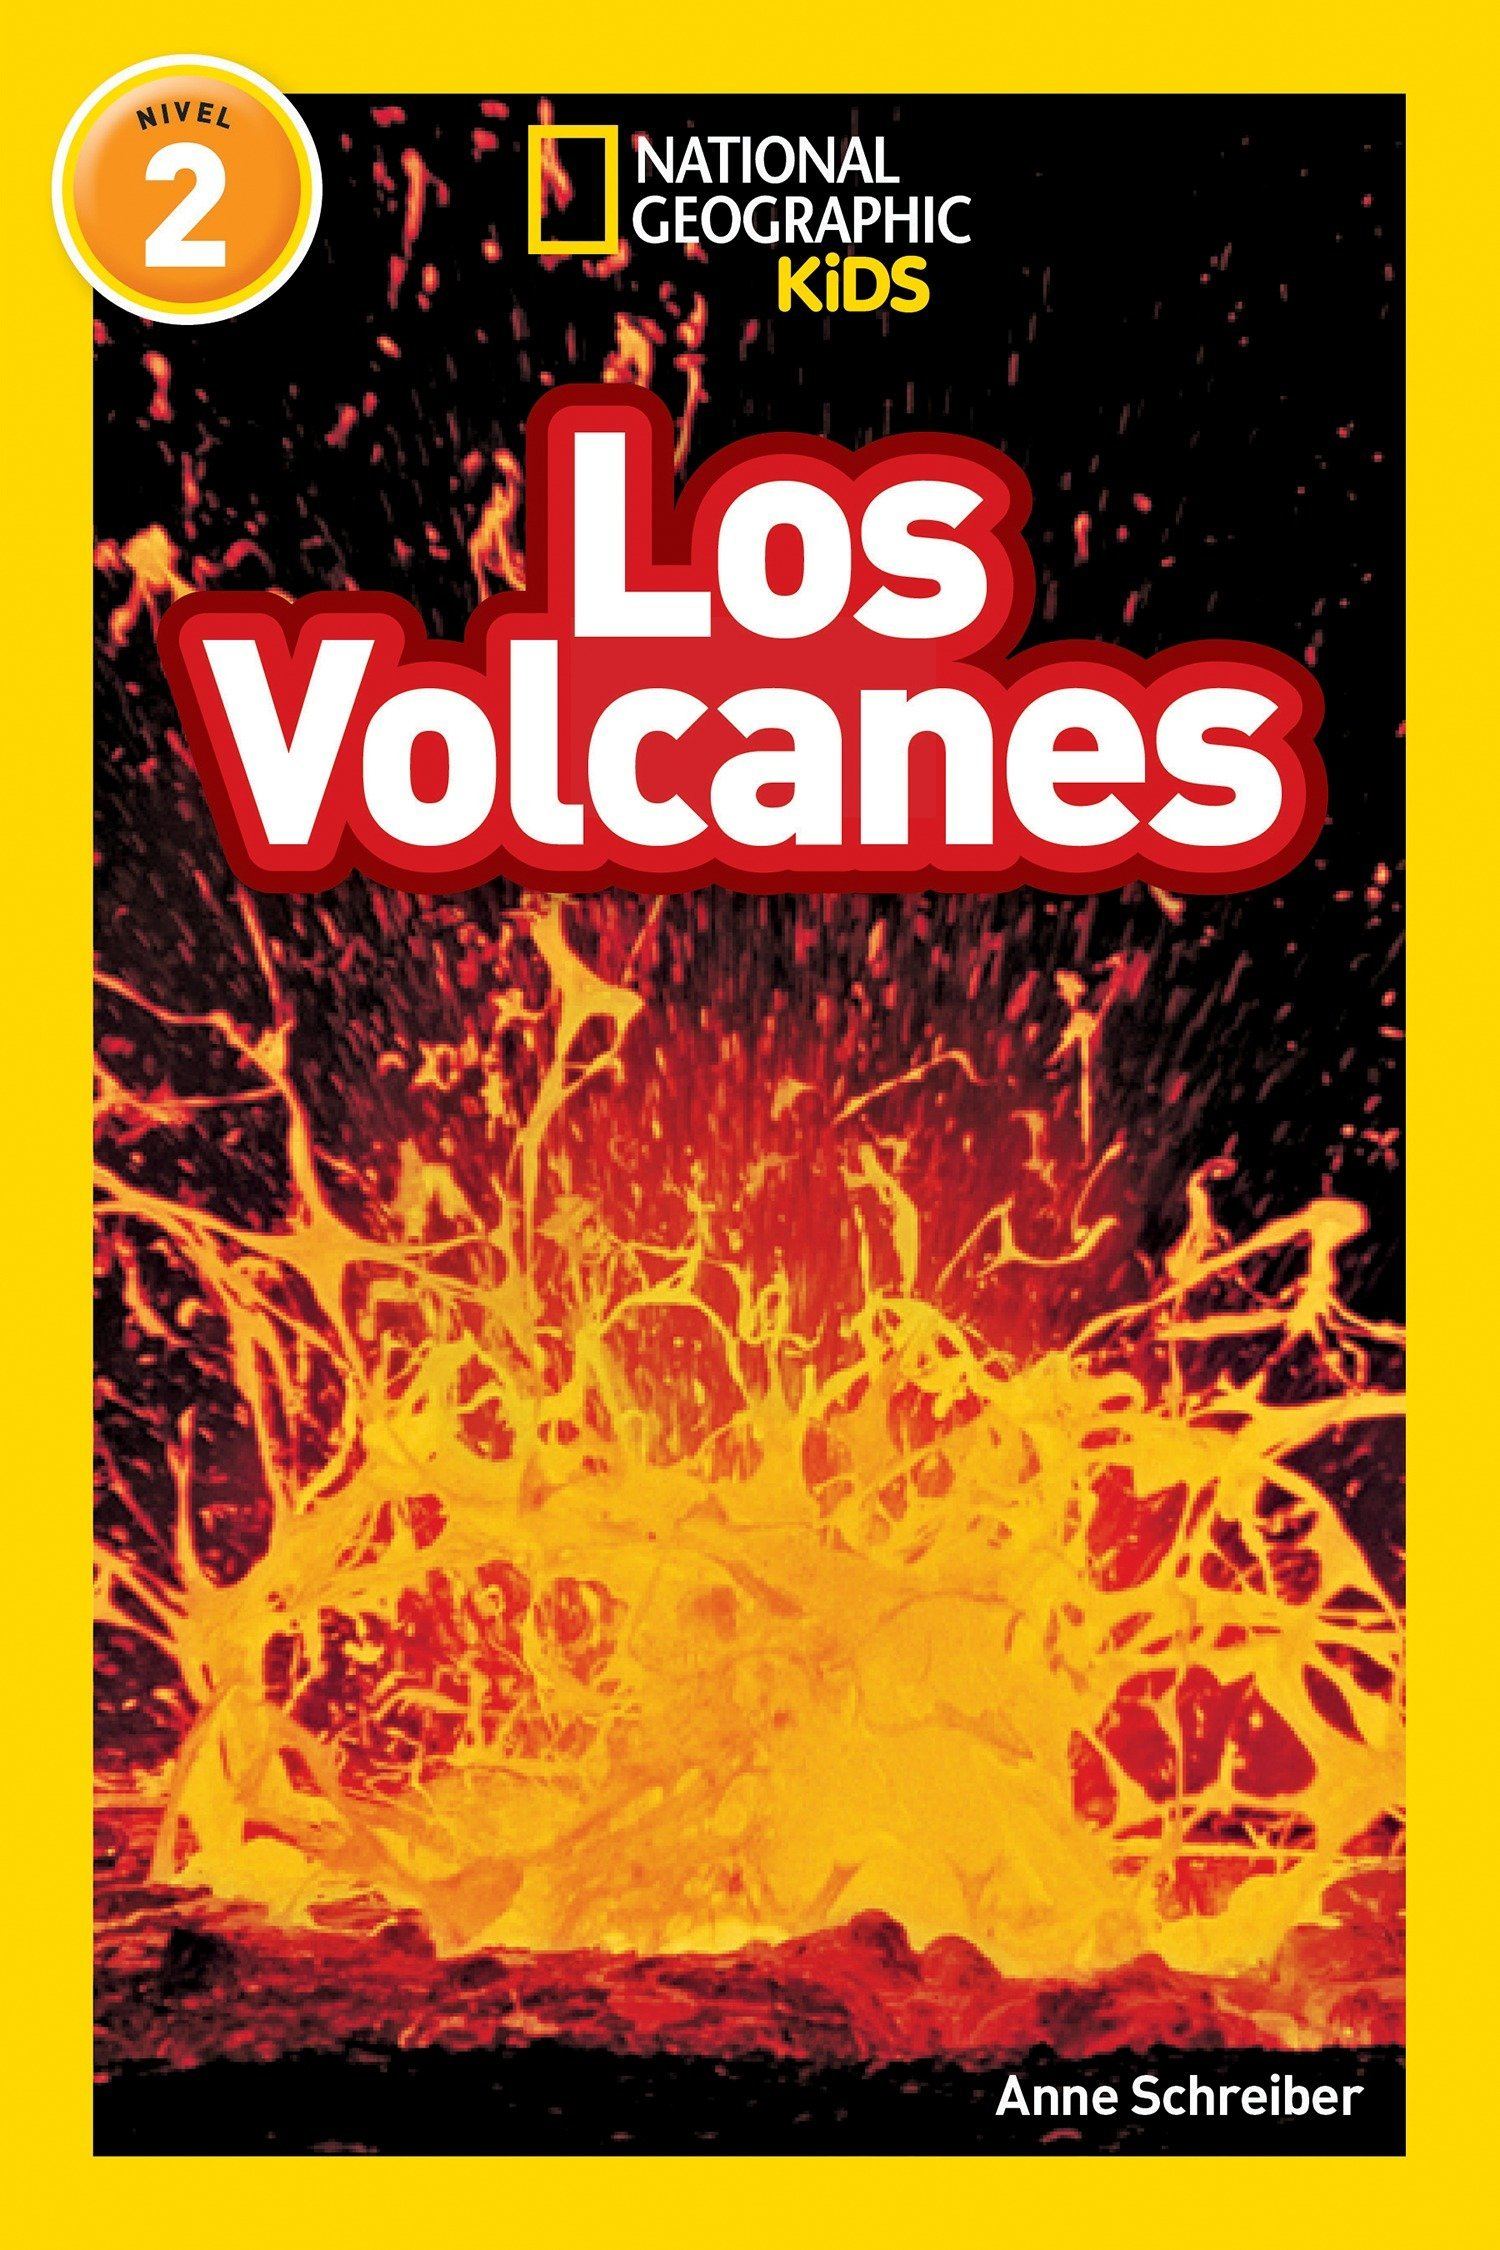 National Geographic Readers: Los Volcanes (L2) (National Geographic Readers Level 2)